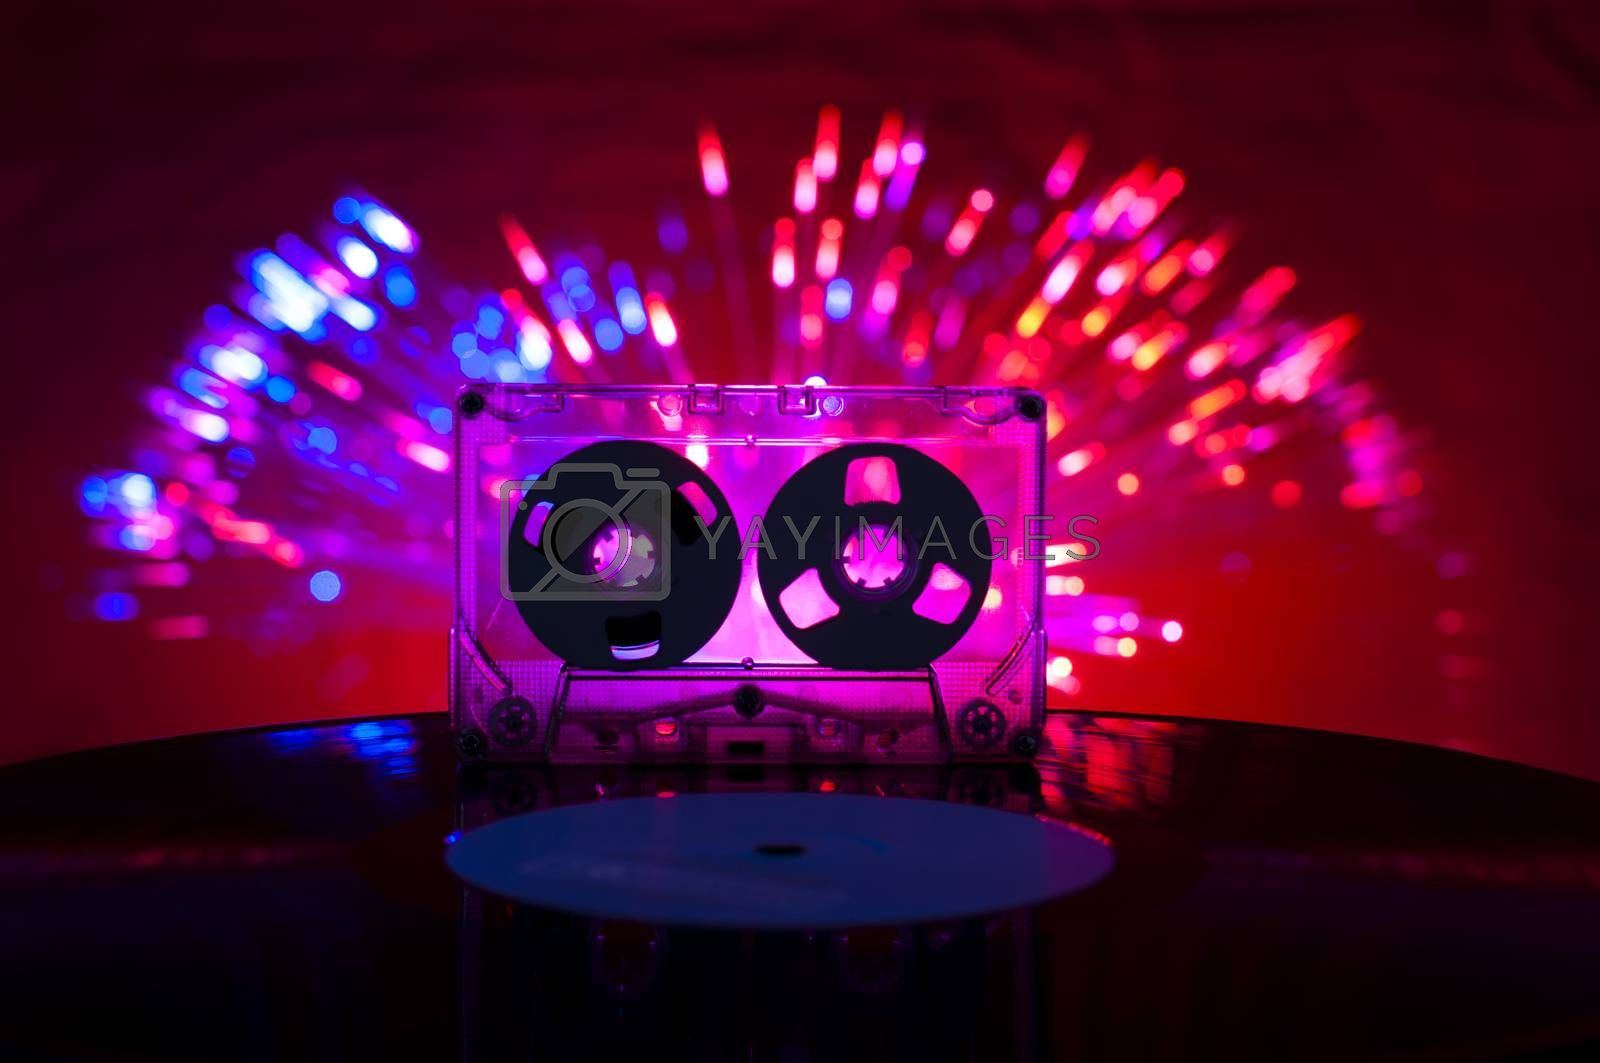 LP vinyl record, cassette tape and disco lights by deyan_georgiev